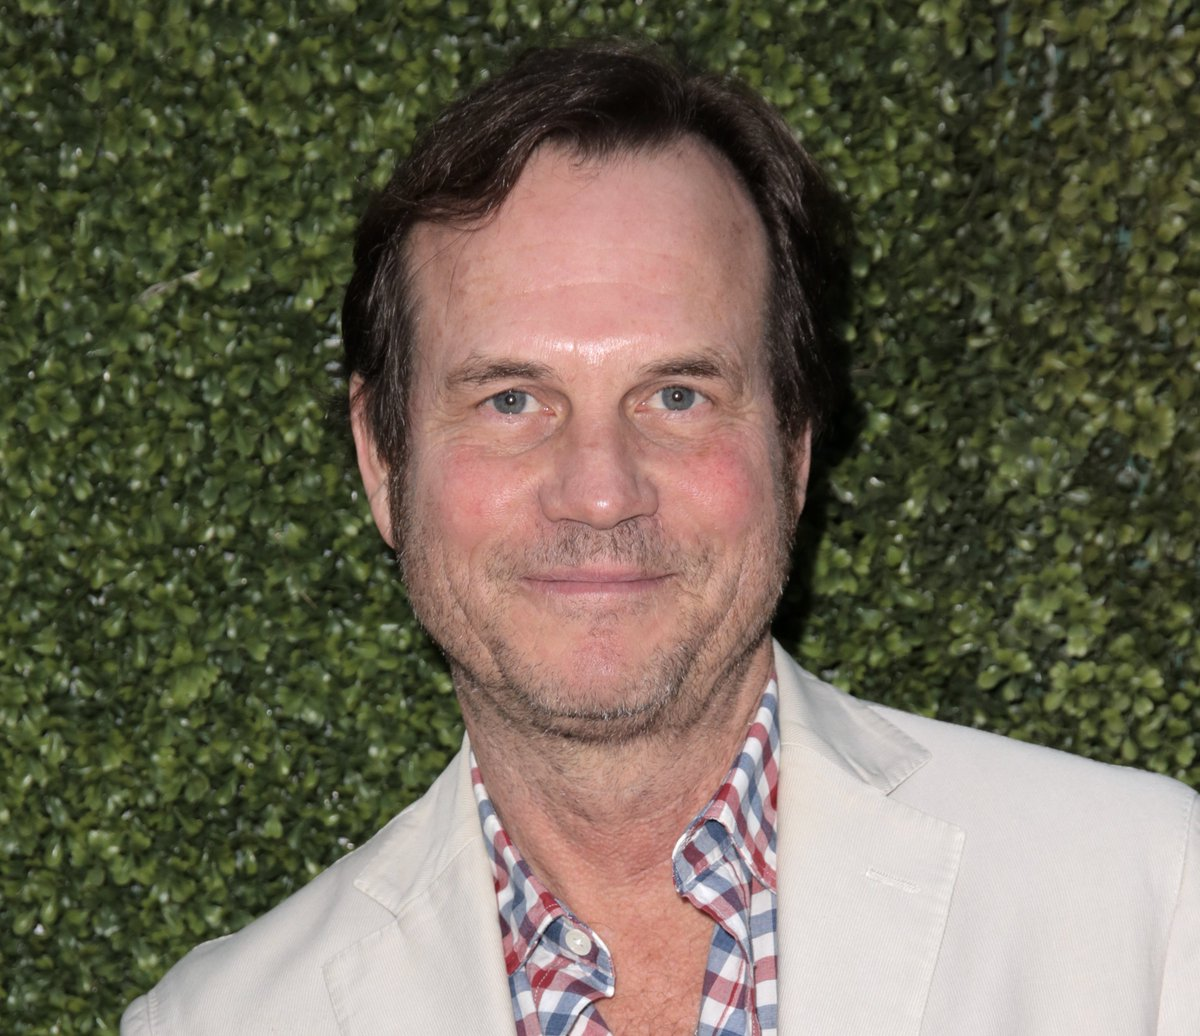 BREAKING: Bill Paxton, beloved actor in 'Titanic' and 'Aliens,' has di...